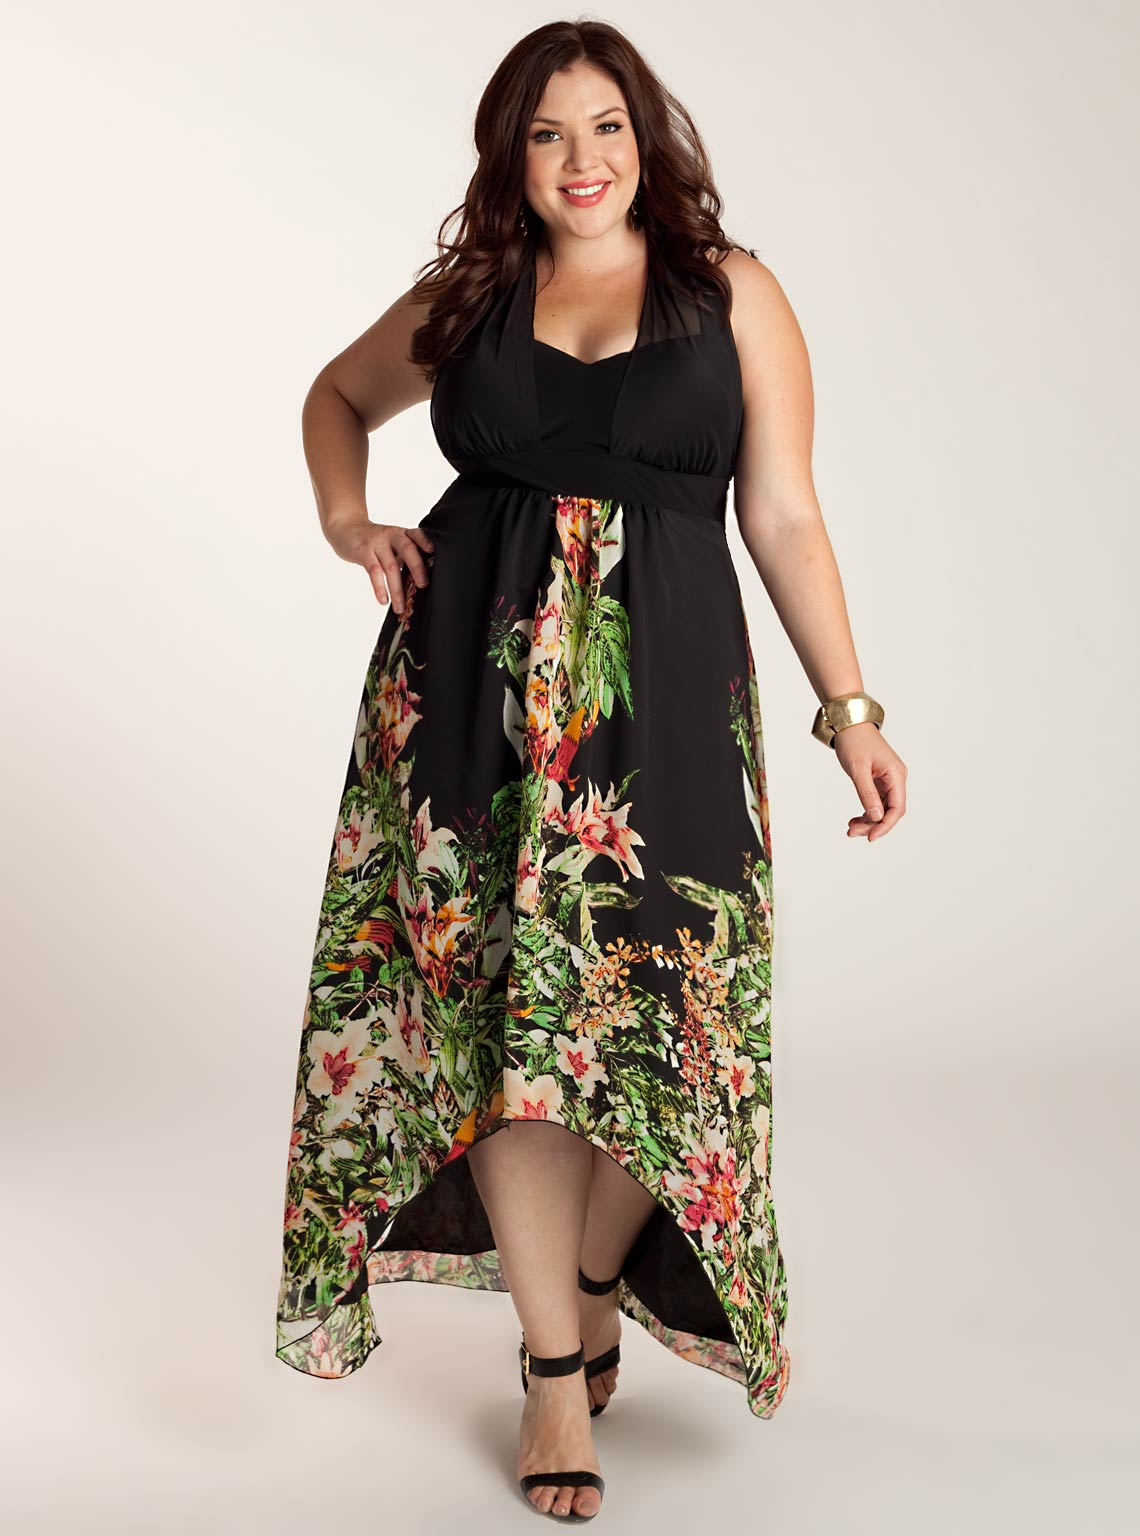 How to Choose Plus Size Casual Dresses